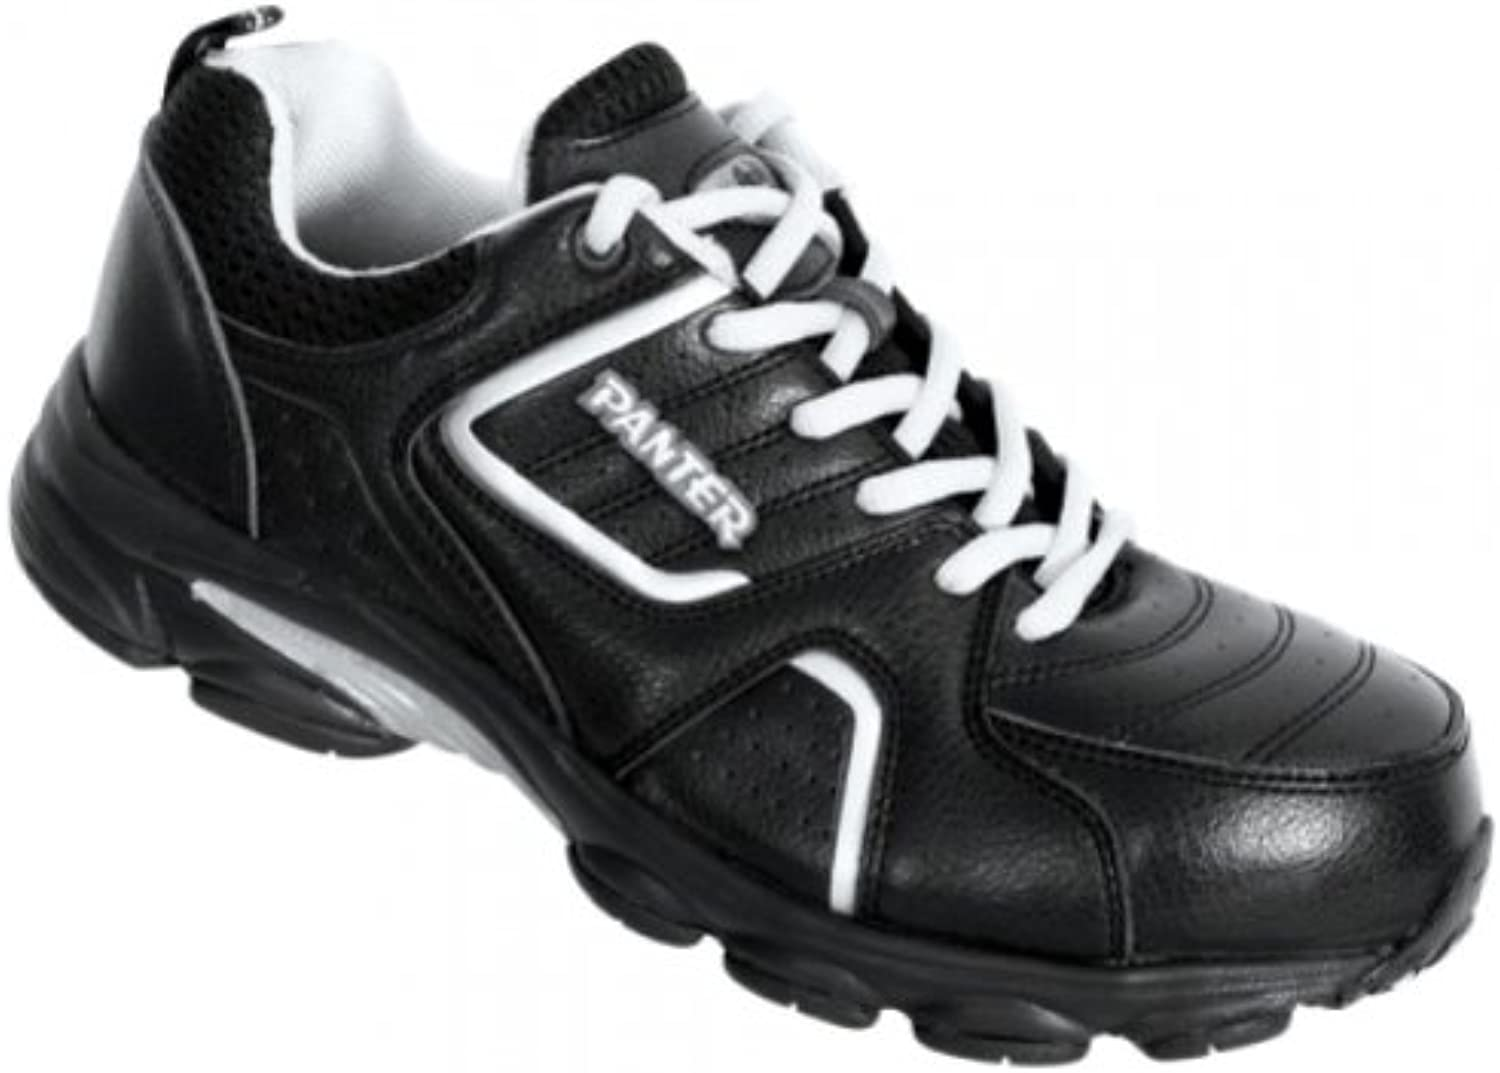 Panther Safety Trainers S1P Potenza Black